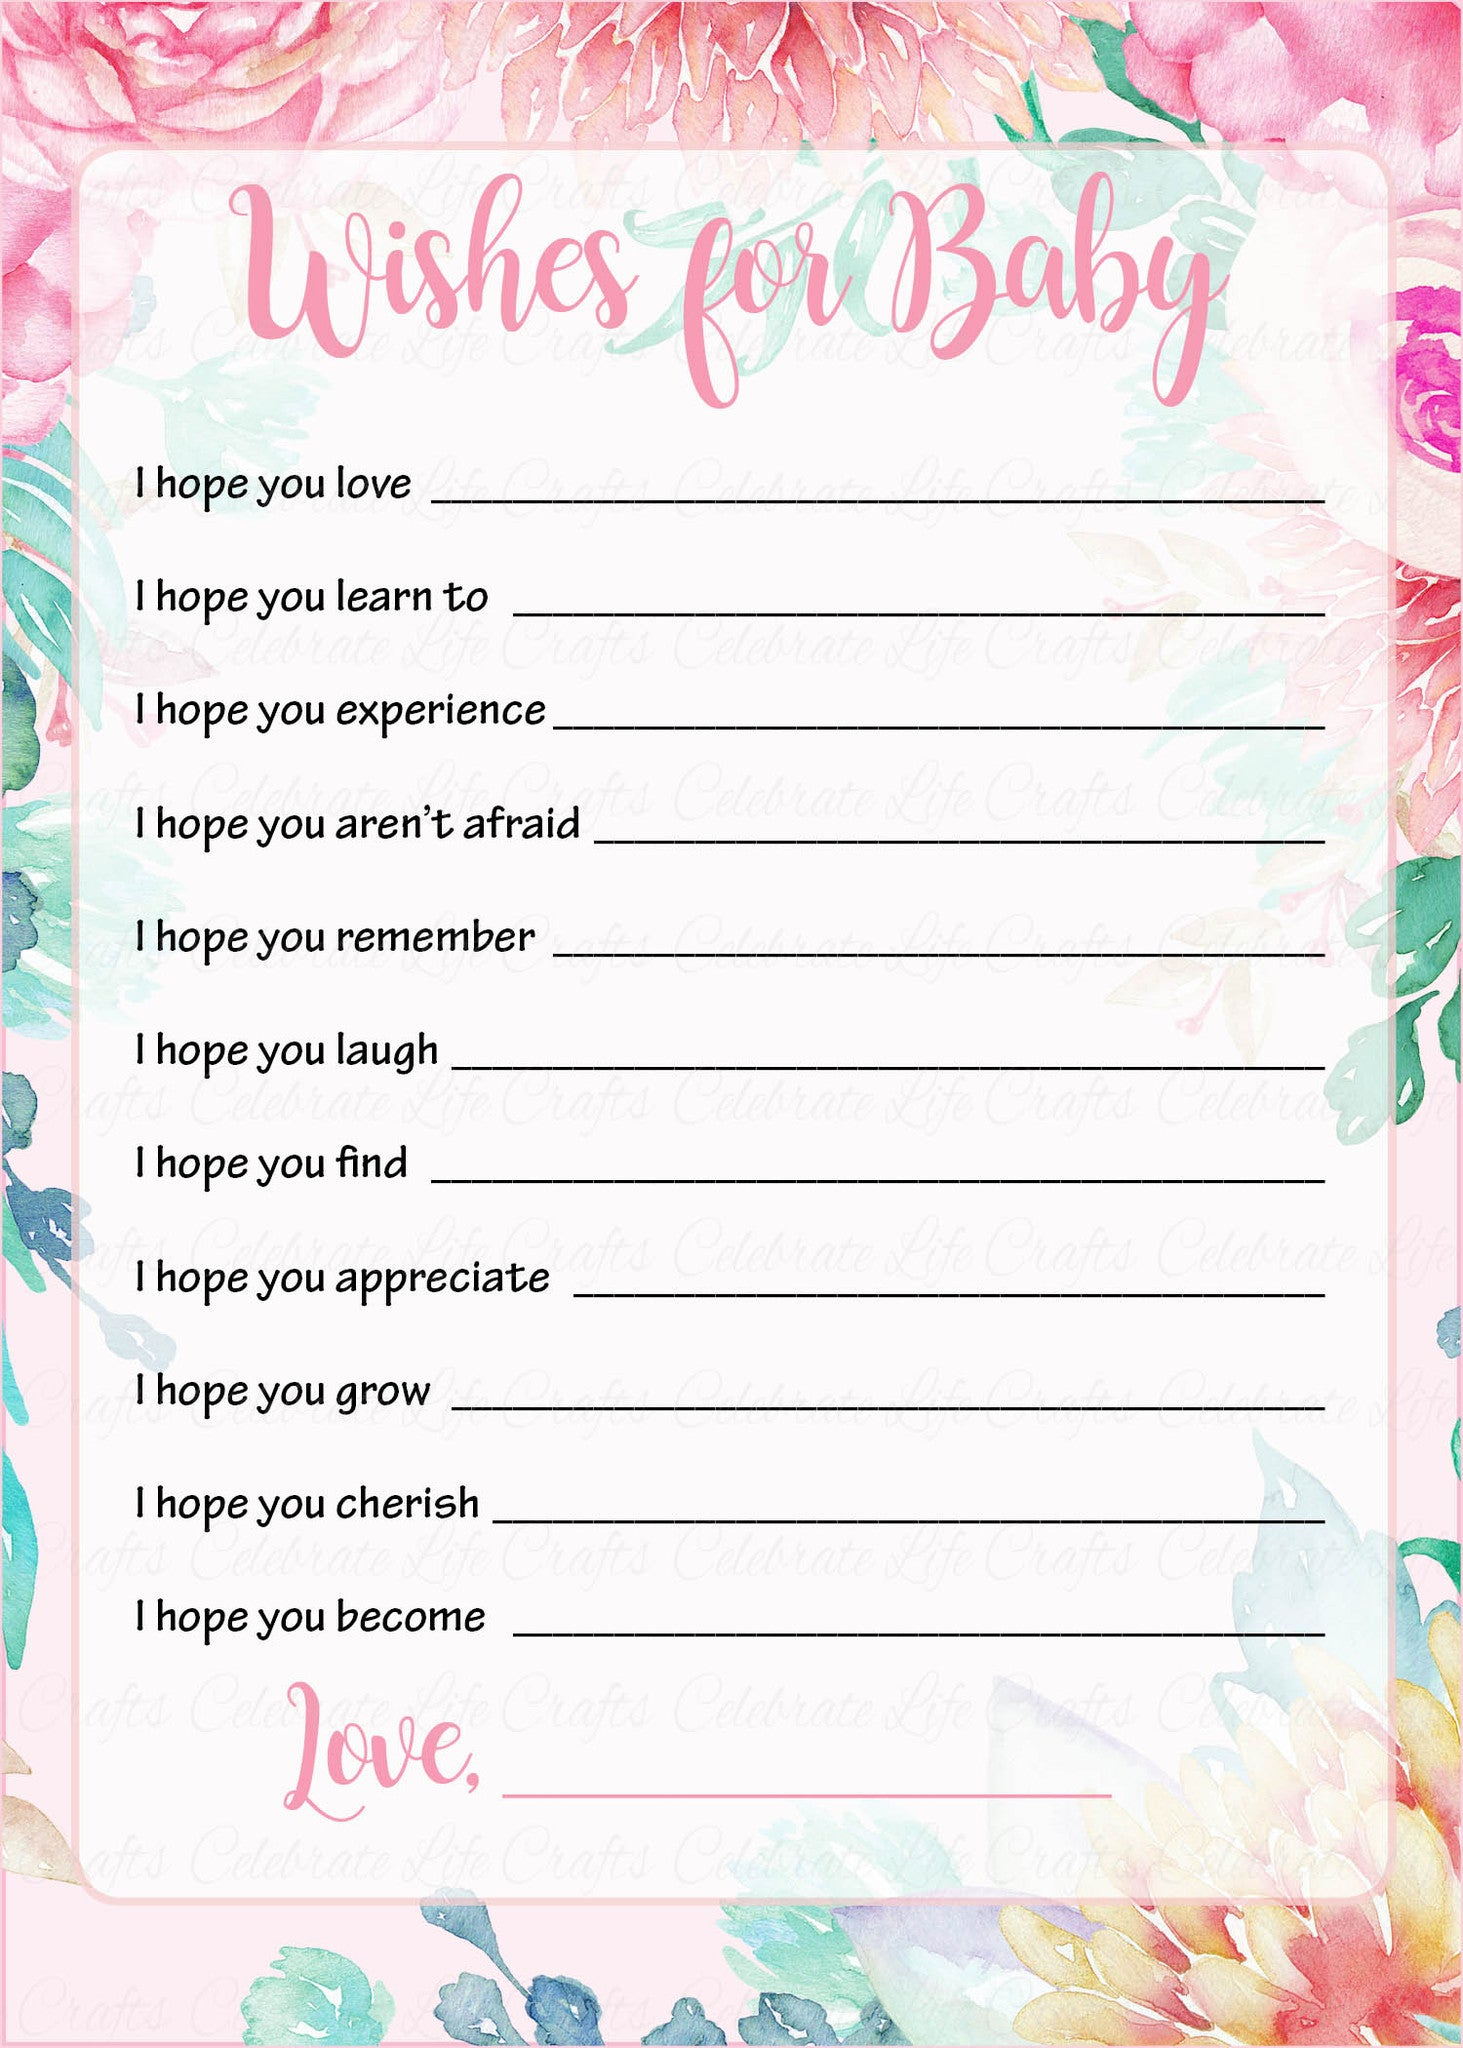 picture regarding Printable Baby Cards titled Desires for Youngster Playing cards - Printable Obtain - Red Floral Spring Child Shower Match - B33001